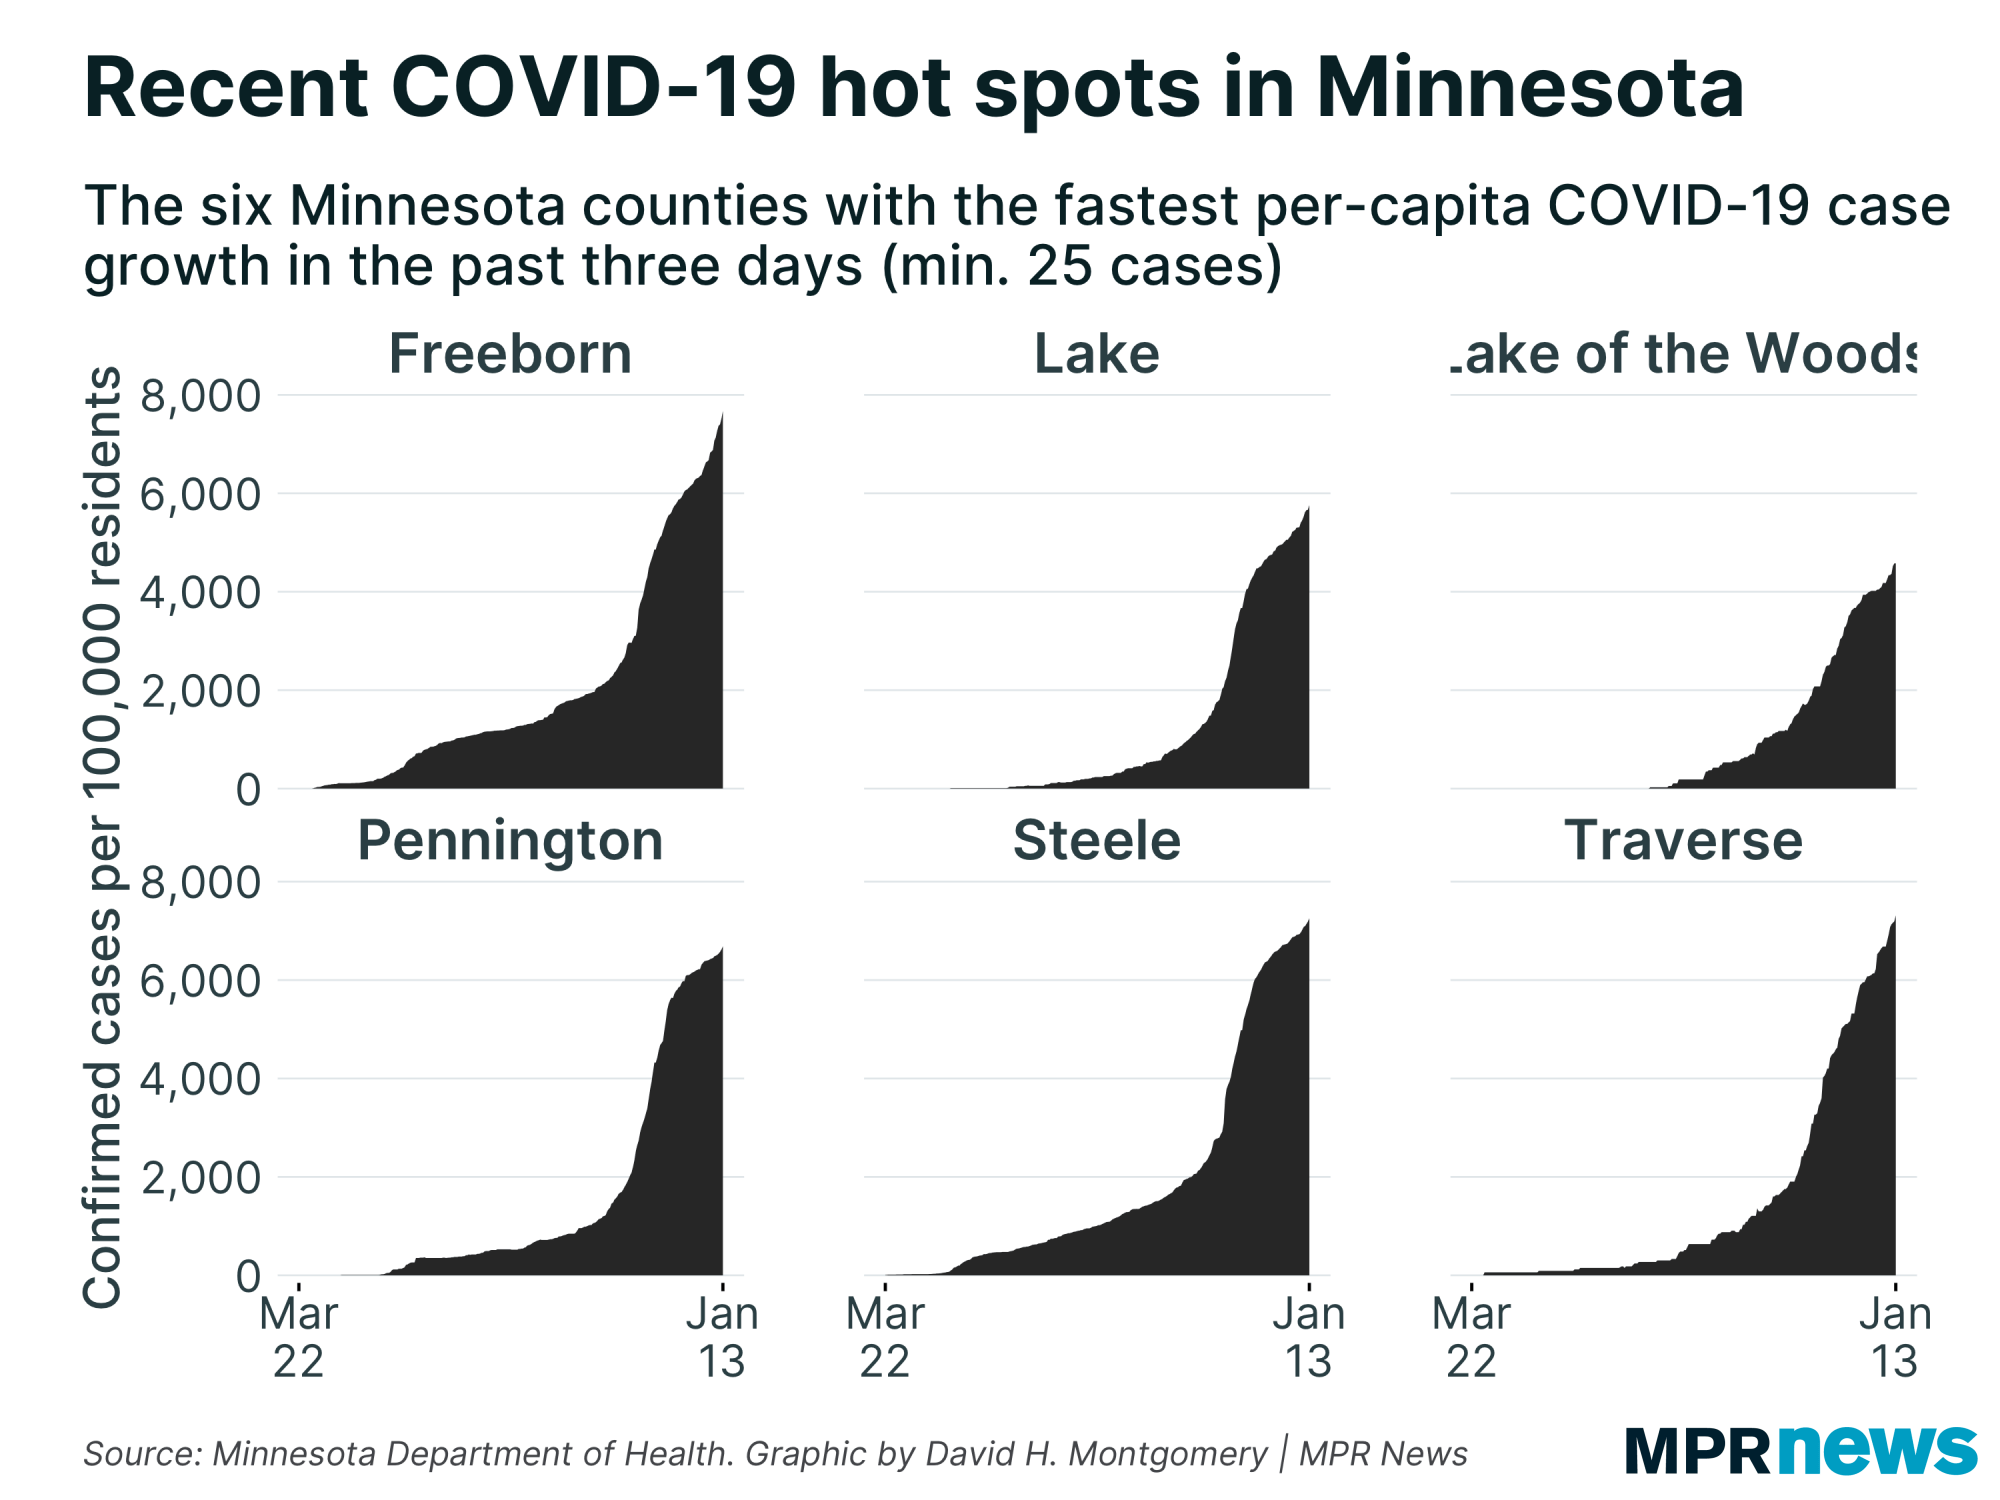 MN counties with fastest growing COVID-19 cases per capita.